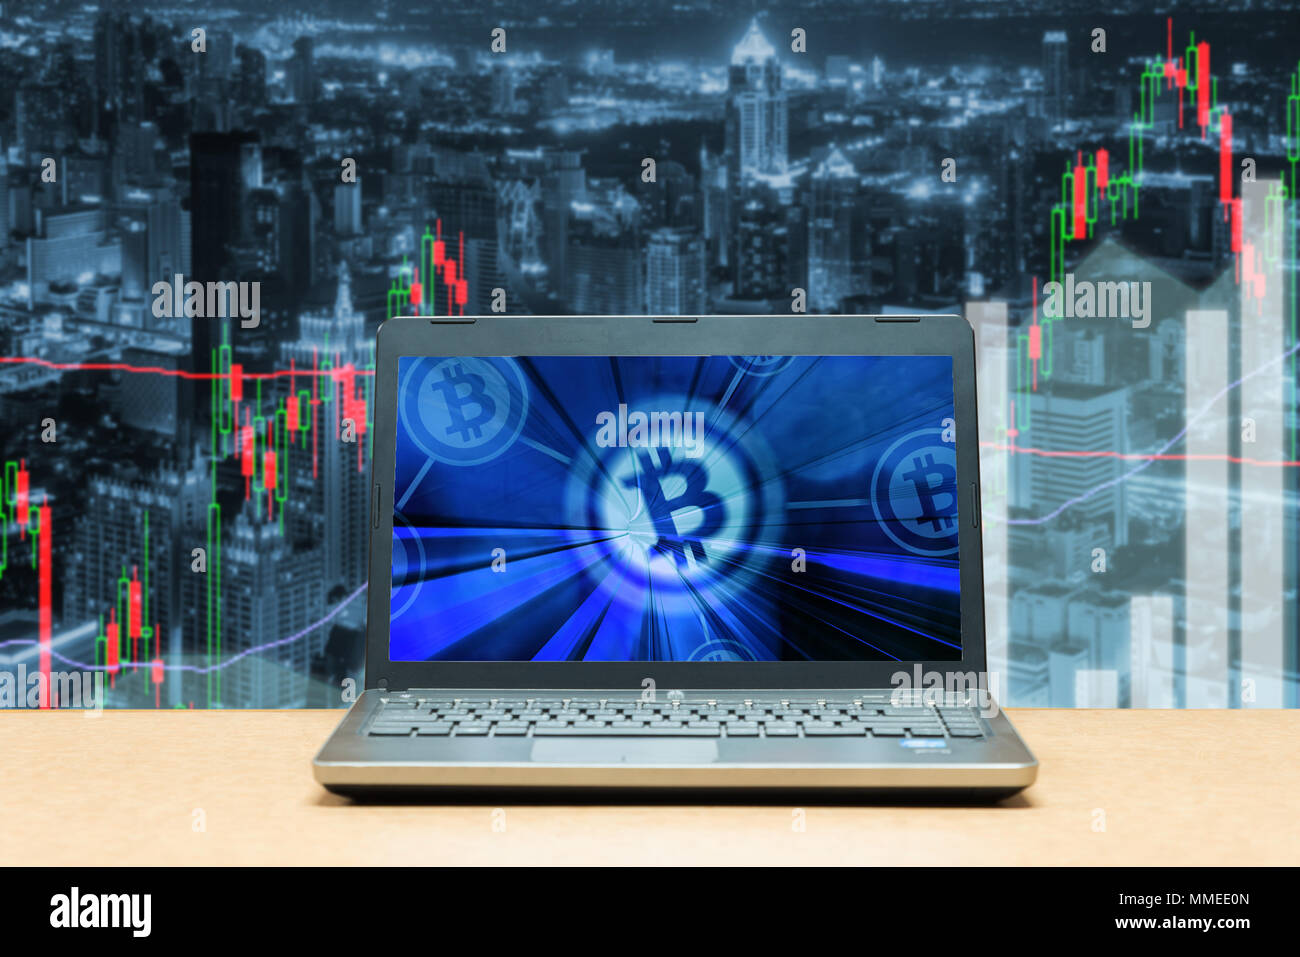 Trade bitcoin like forex